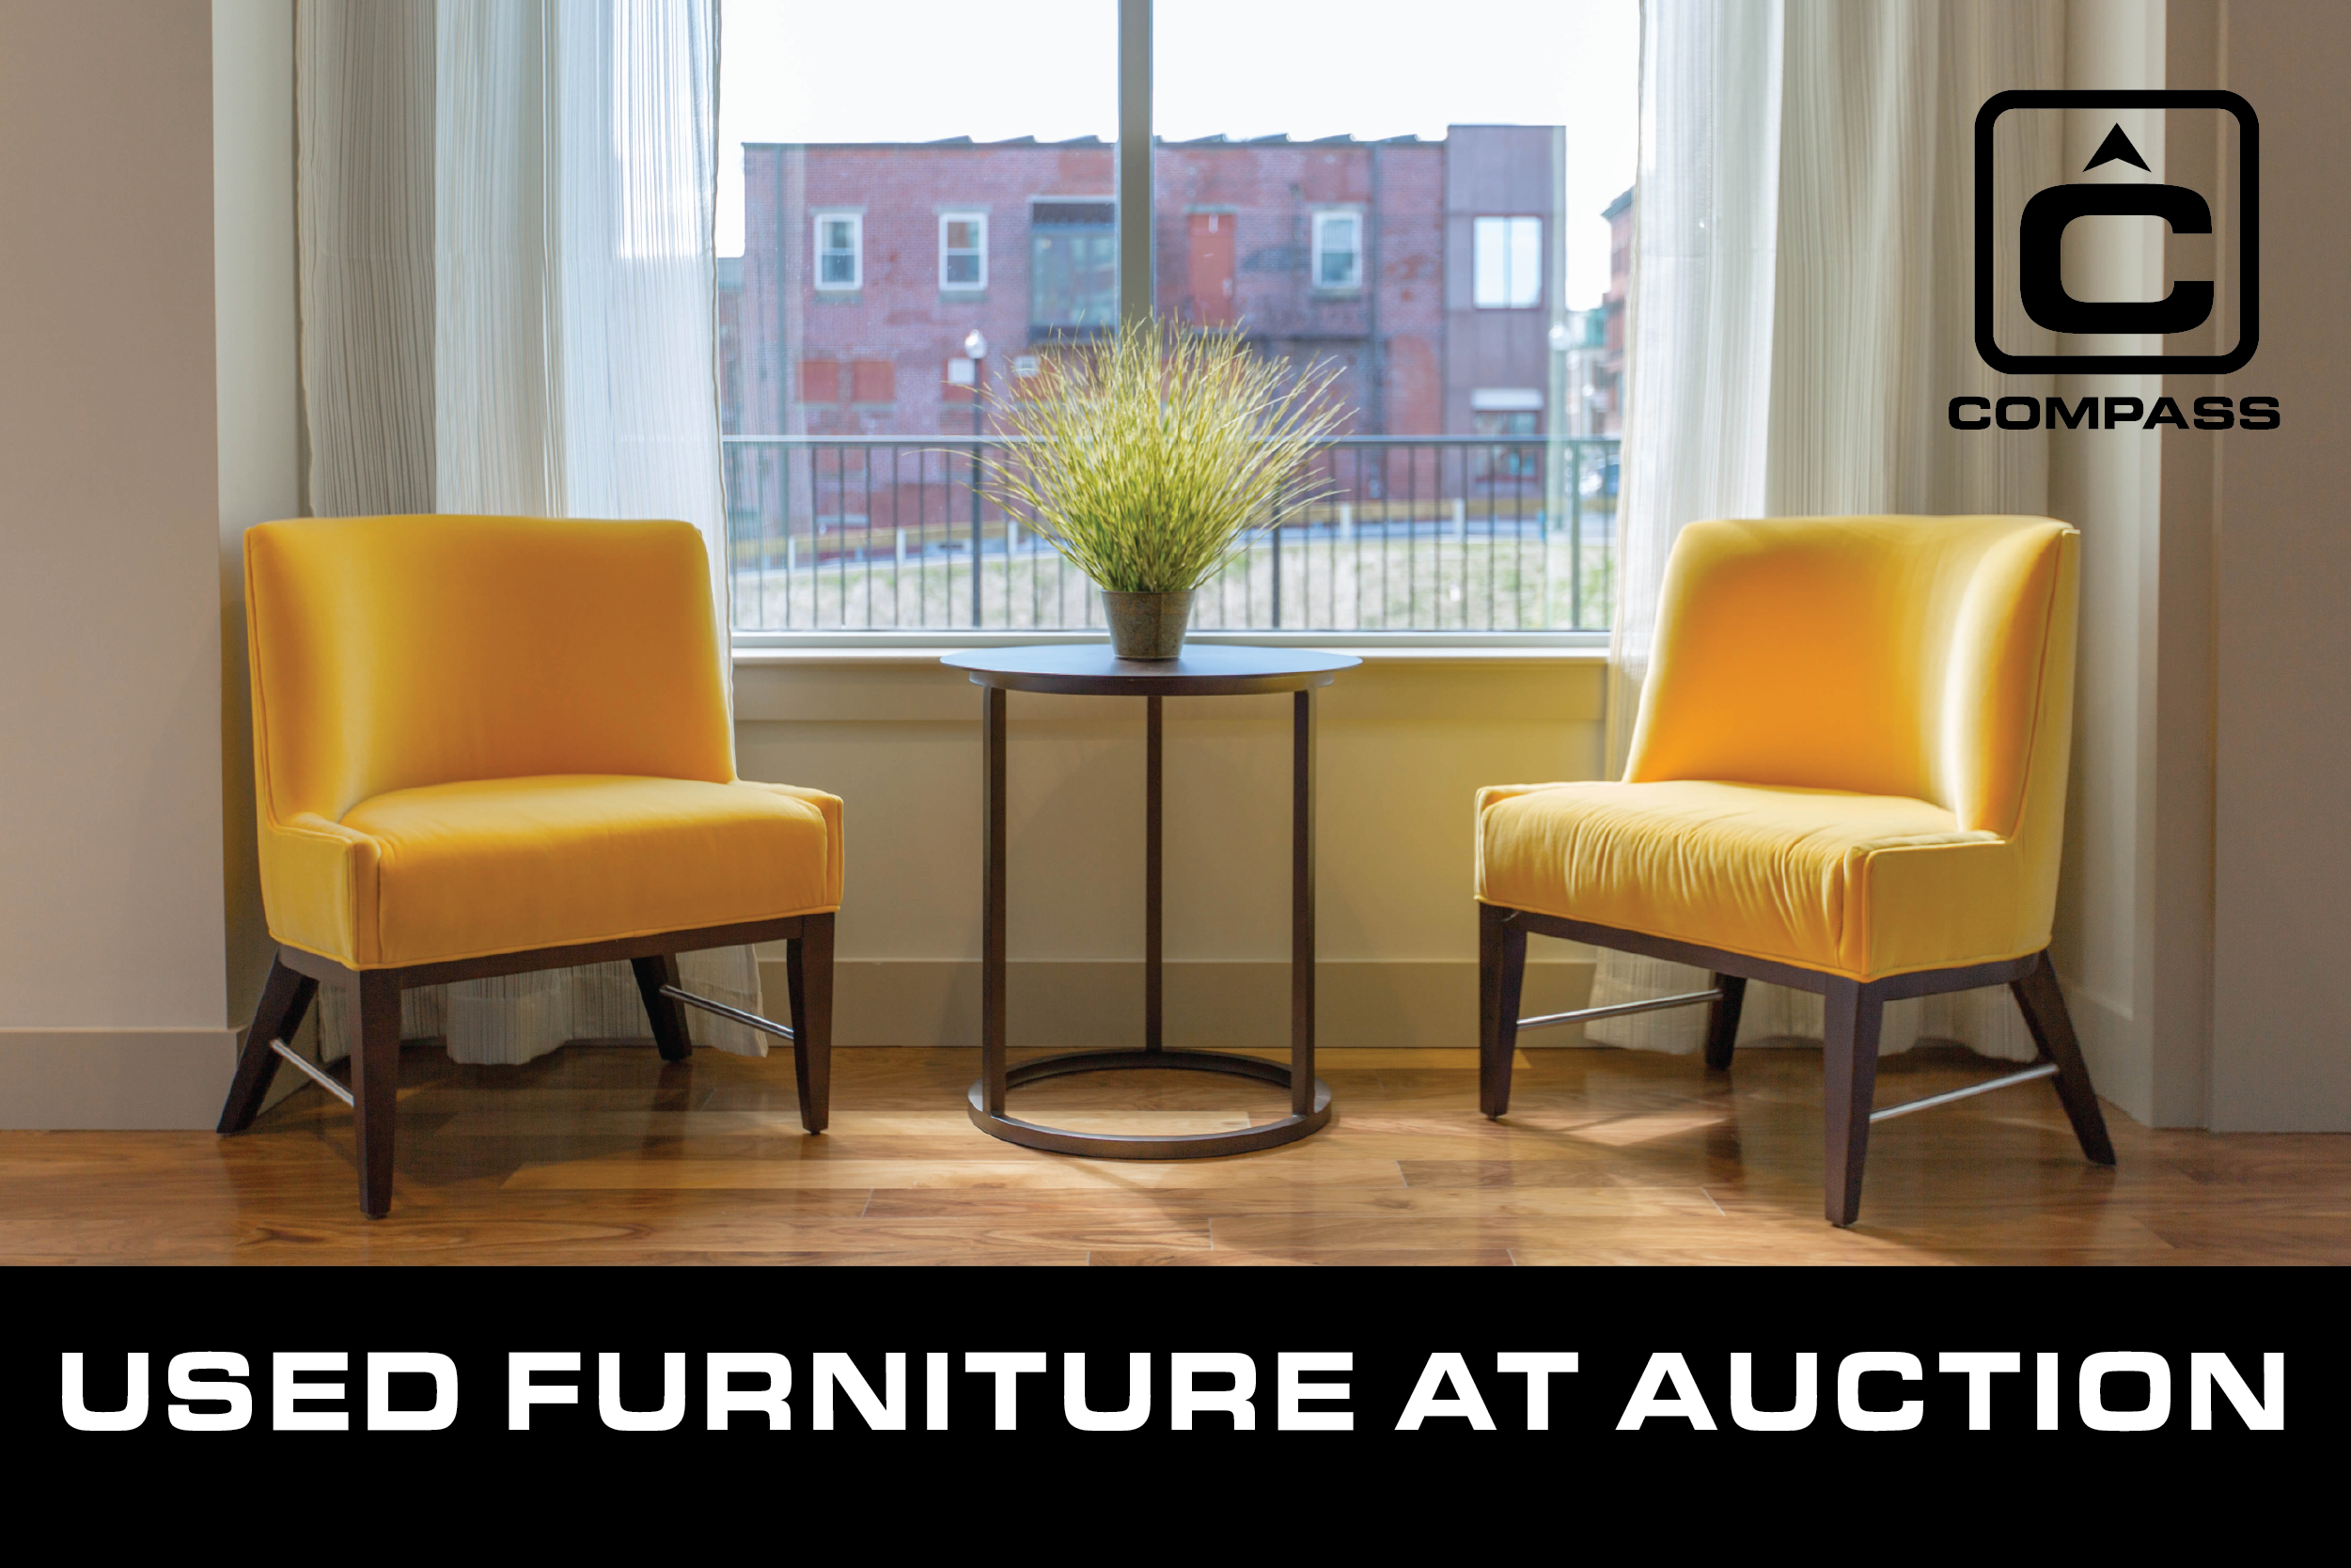 Used Furniture at Auction